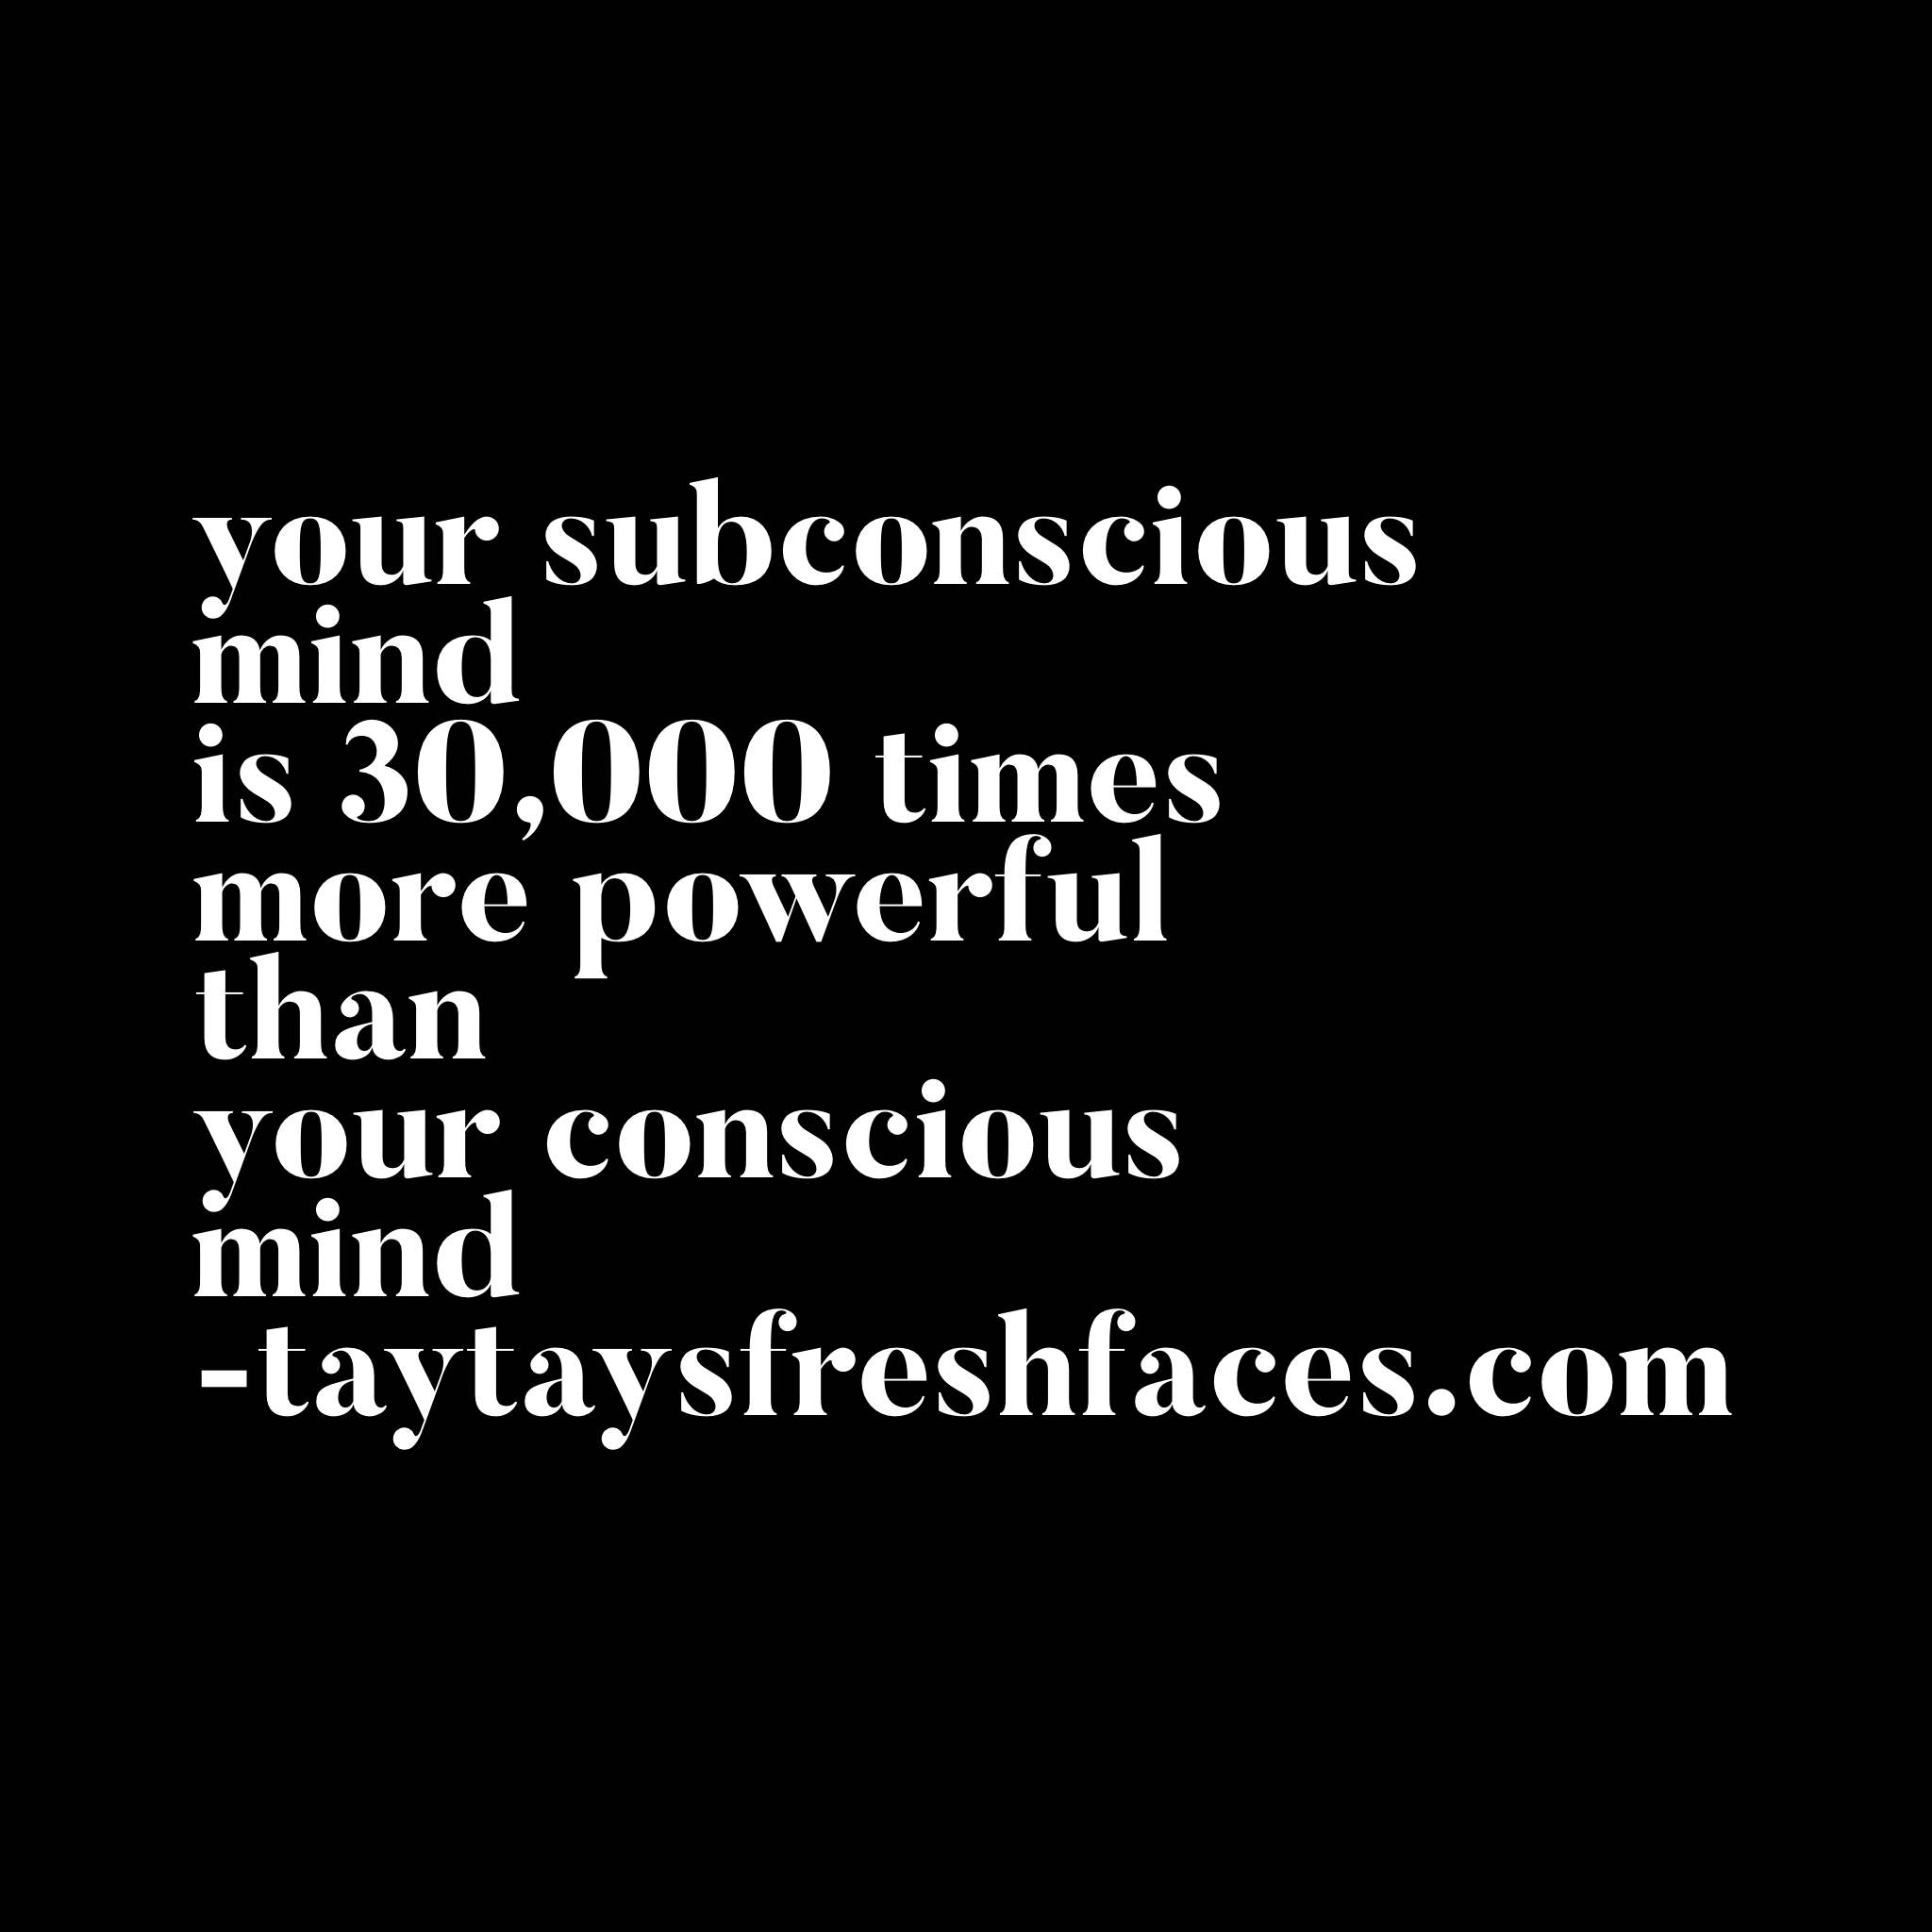 Your subconscious mind is 30,000 times more powerful than